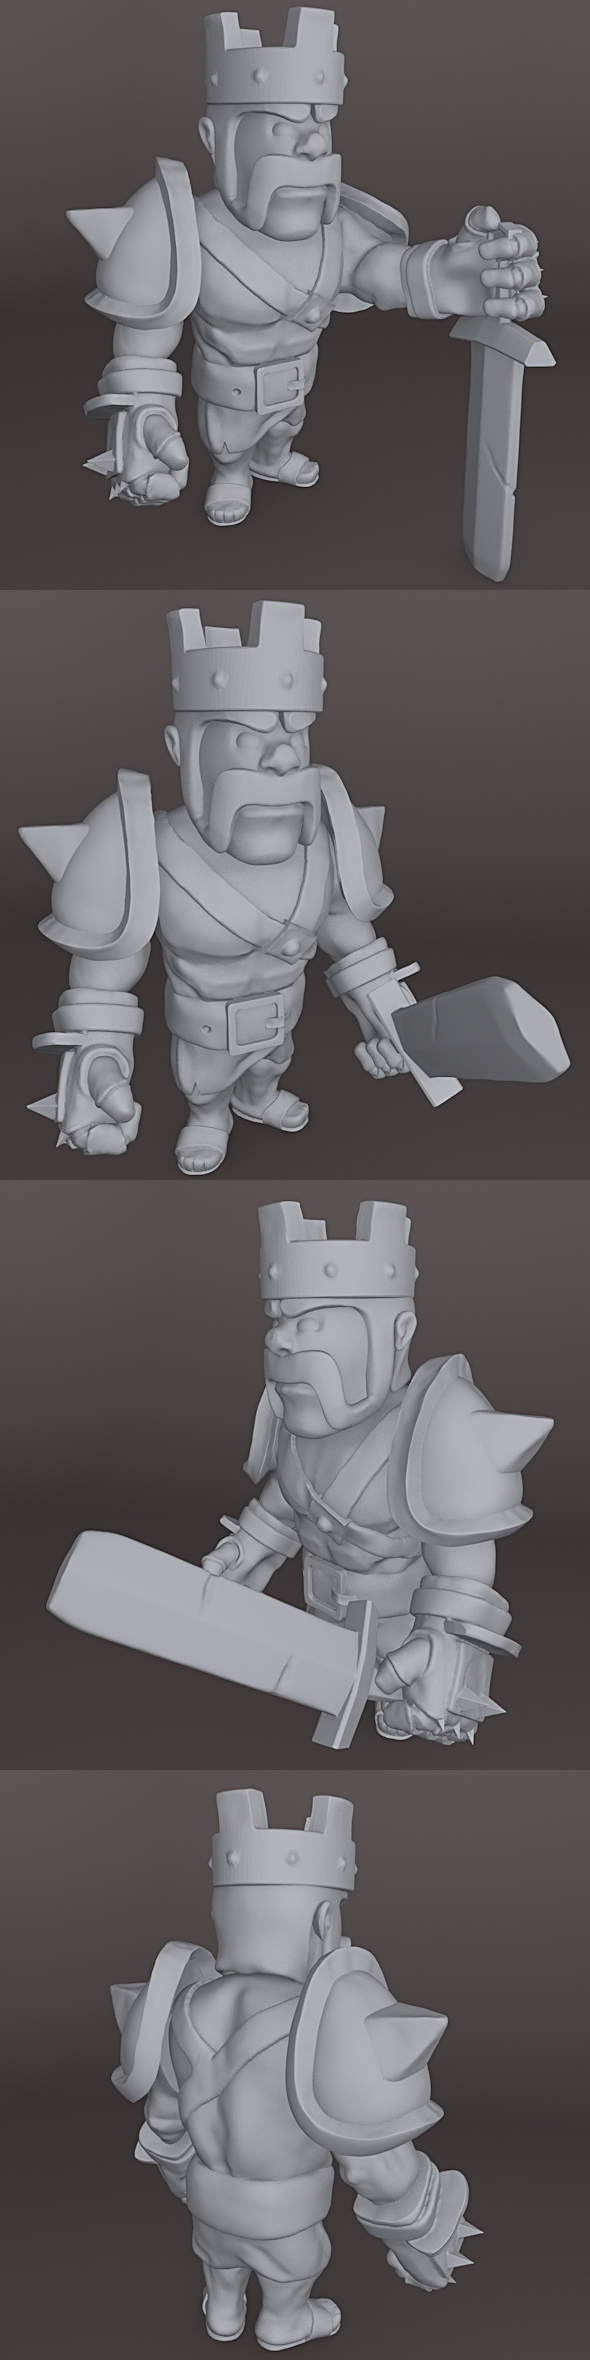 Barbarian King Clash of Clans 3D PRINTER - 3DOcean Item for Sale